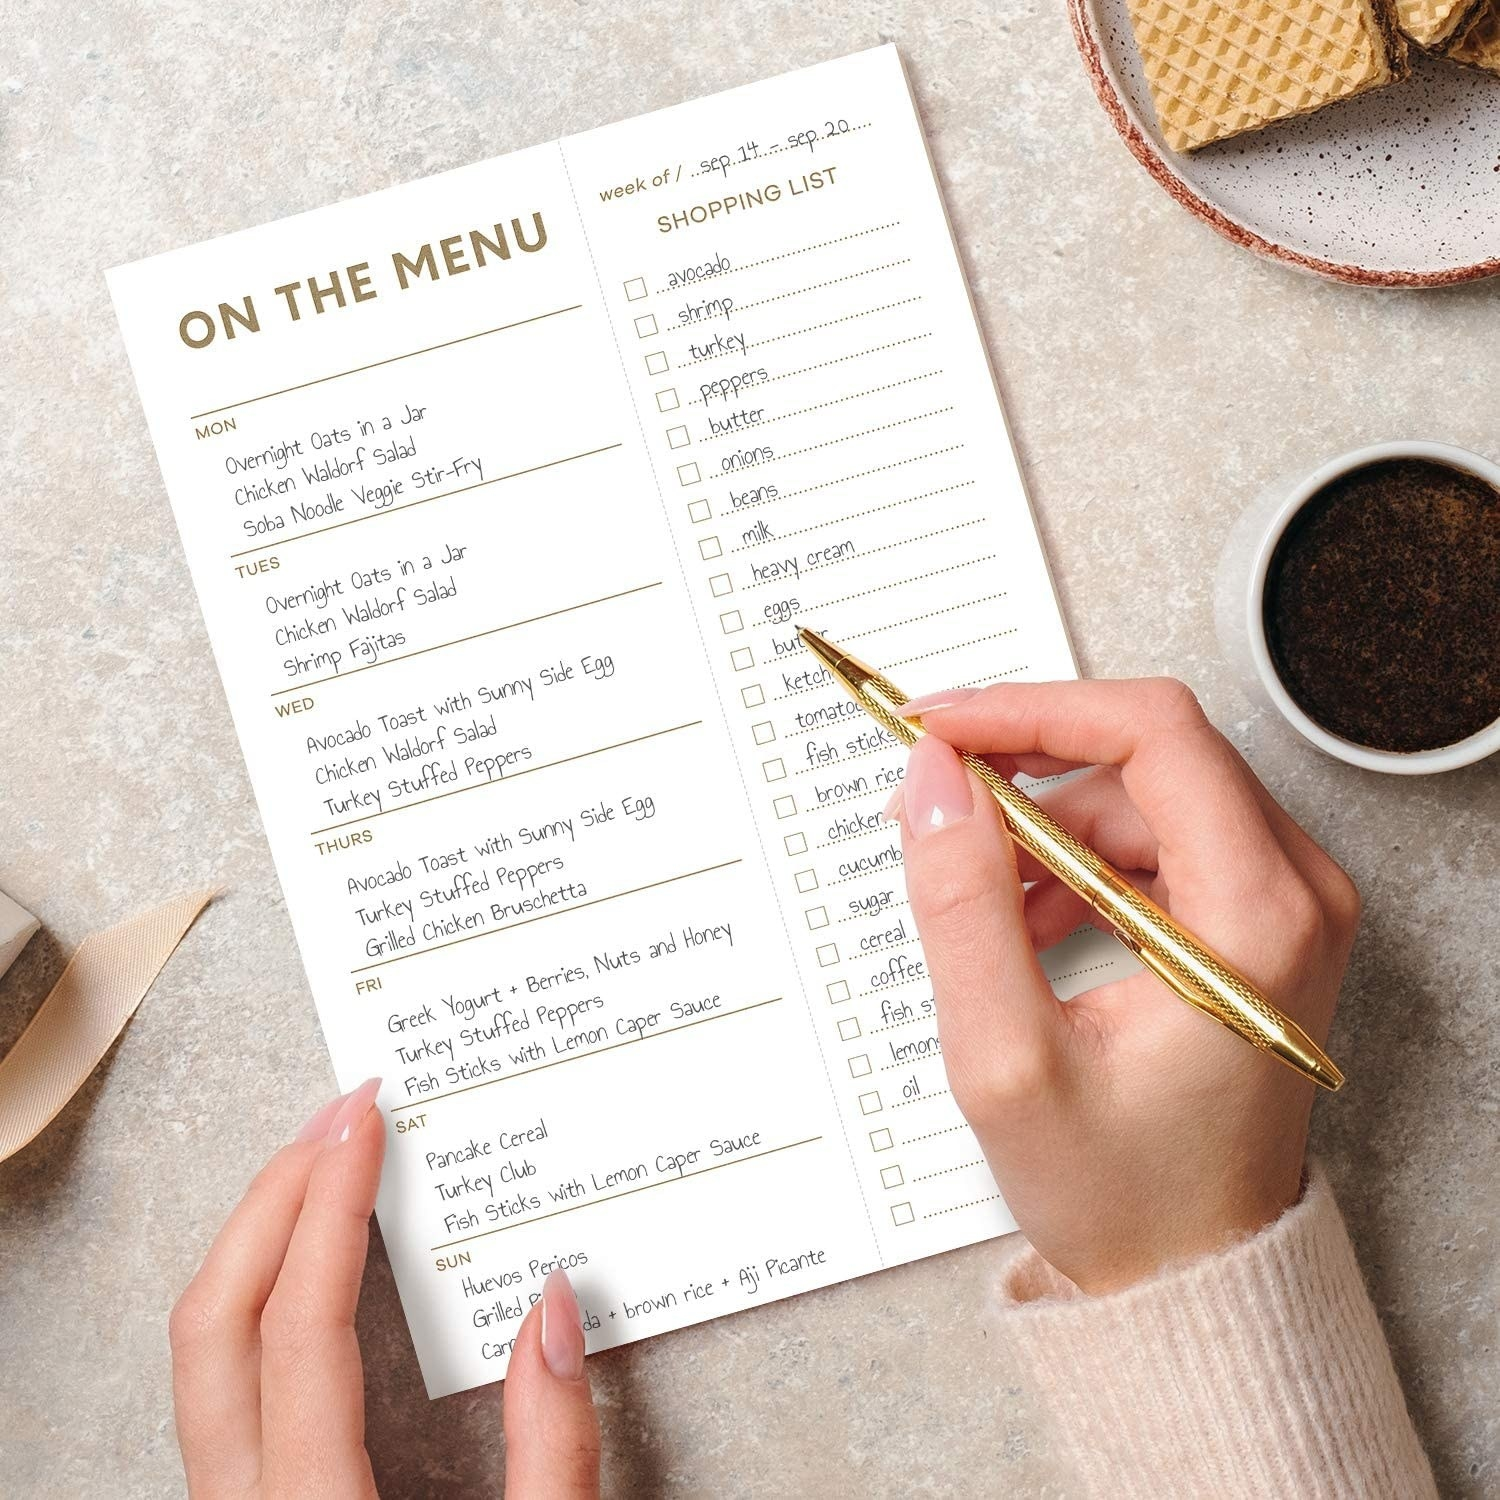 A person writing on the menu pad